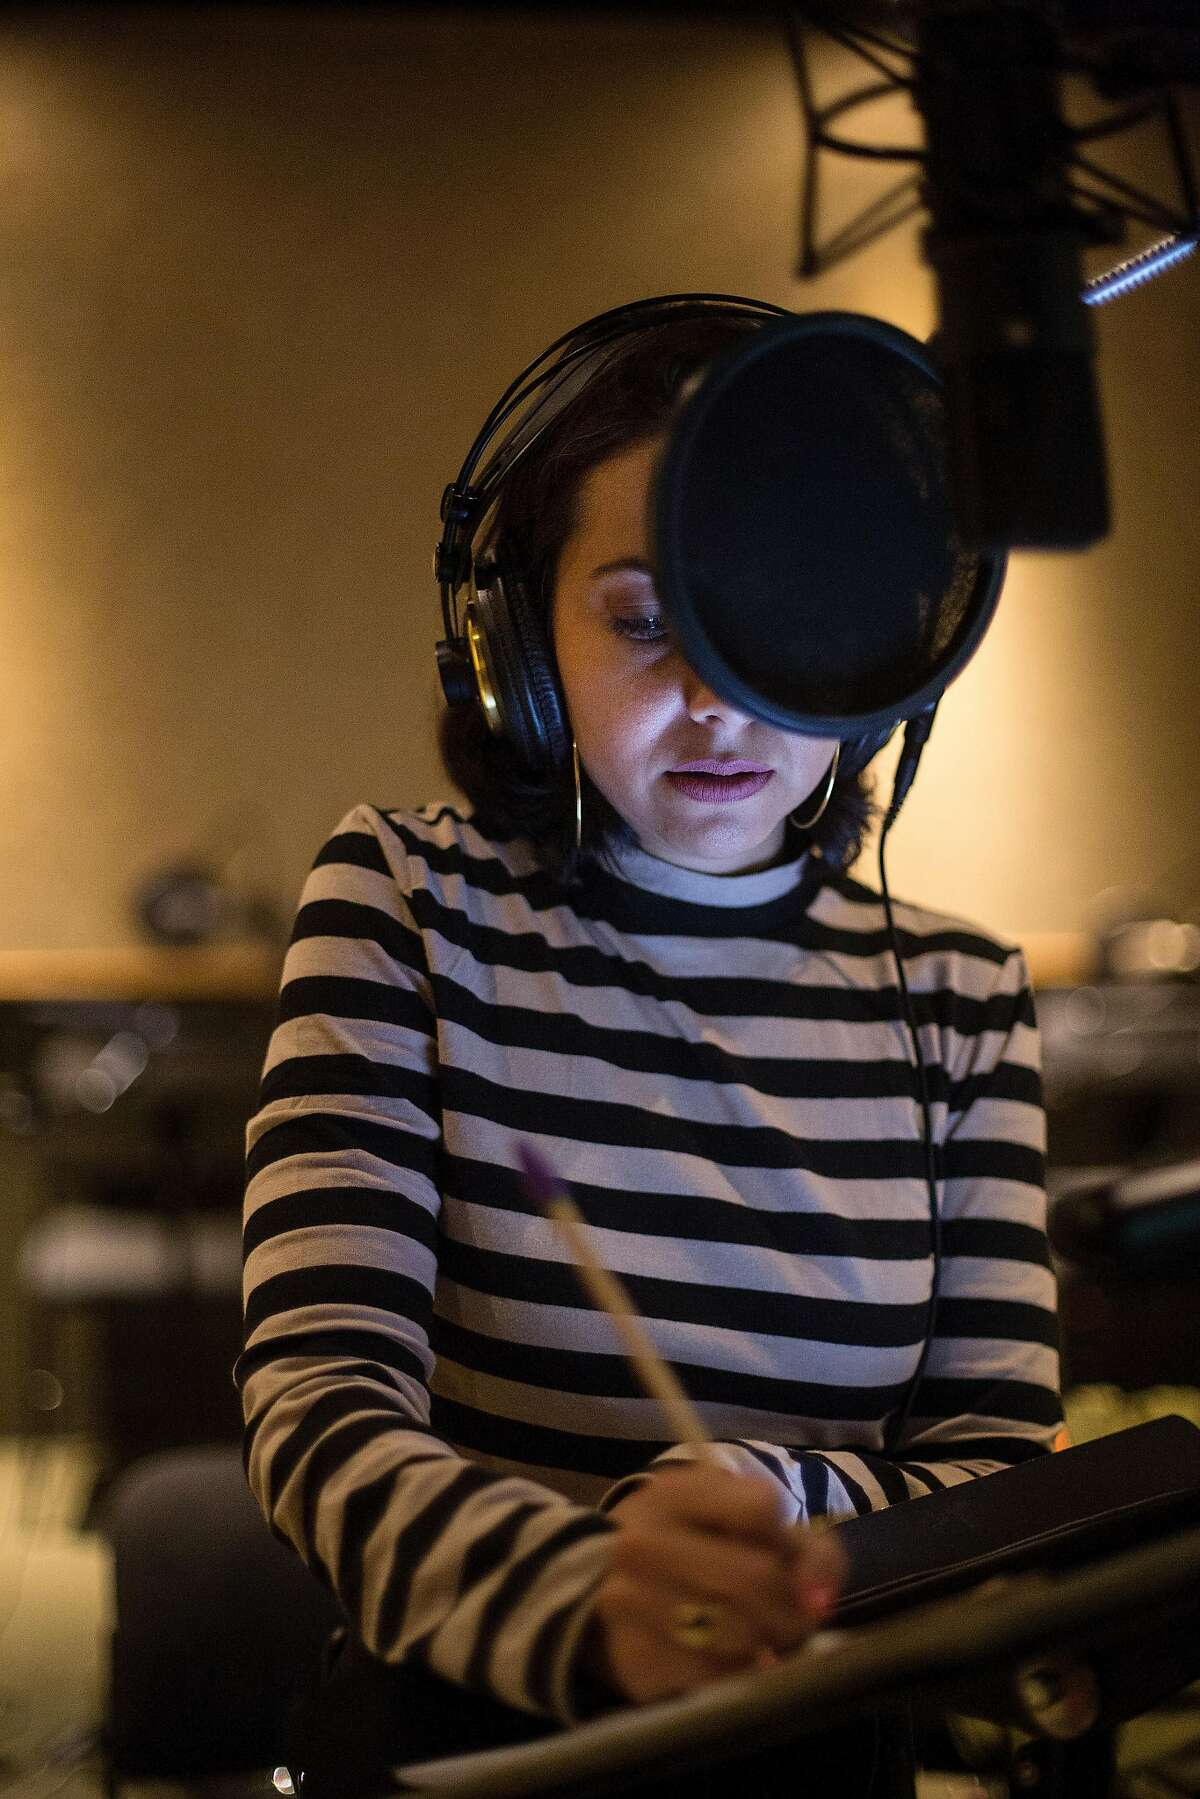 Actress Kathreen Khavari records the voiceover for Ms. Marvel, who is Marvel Comic�s and Marvel Entertainment�s first Muslim superhero, on April 19, 2018, in Los Angeles, Calif. Khavari, a first generation American whose parents are immigrants from Iran, is fighting for Middle Eastern representation in Hollywood.